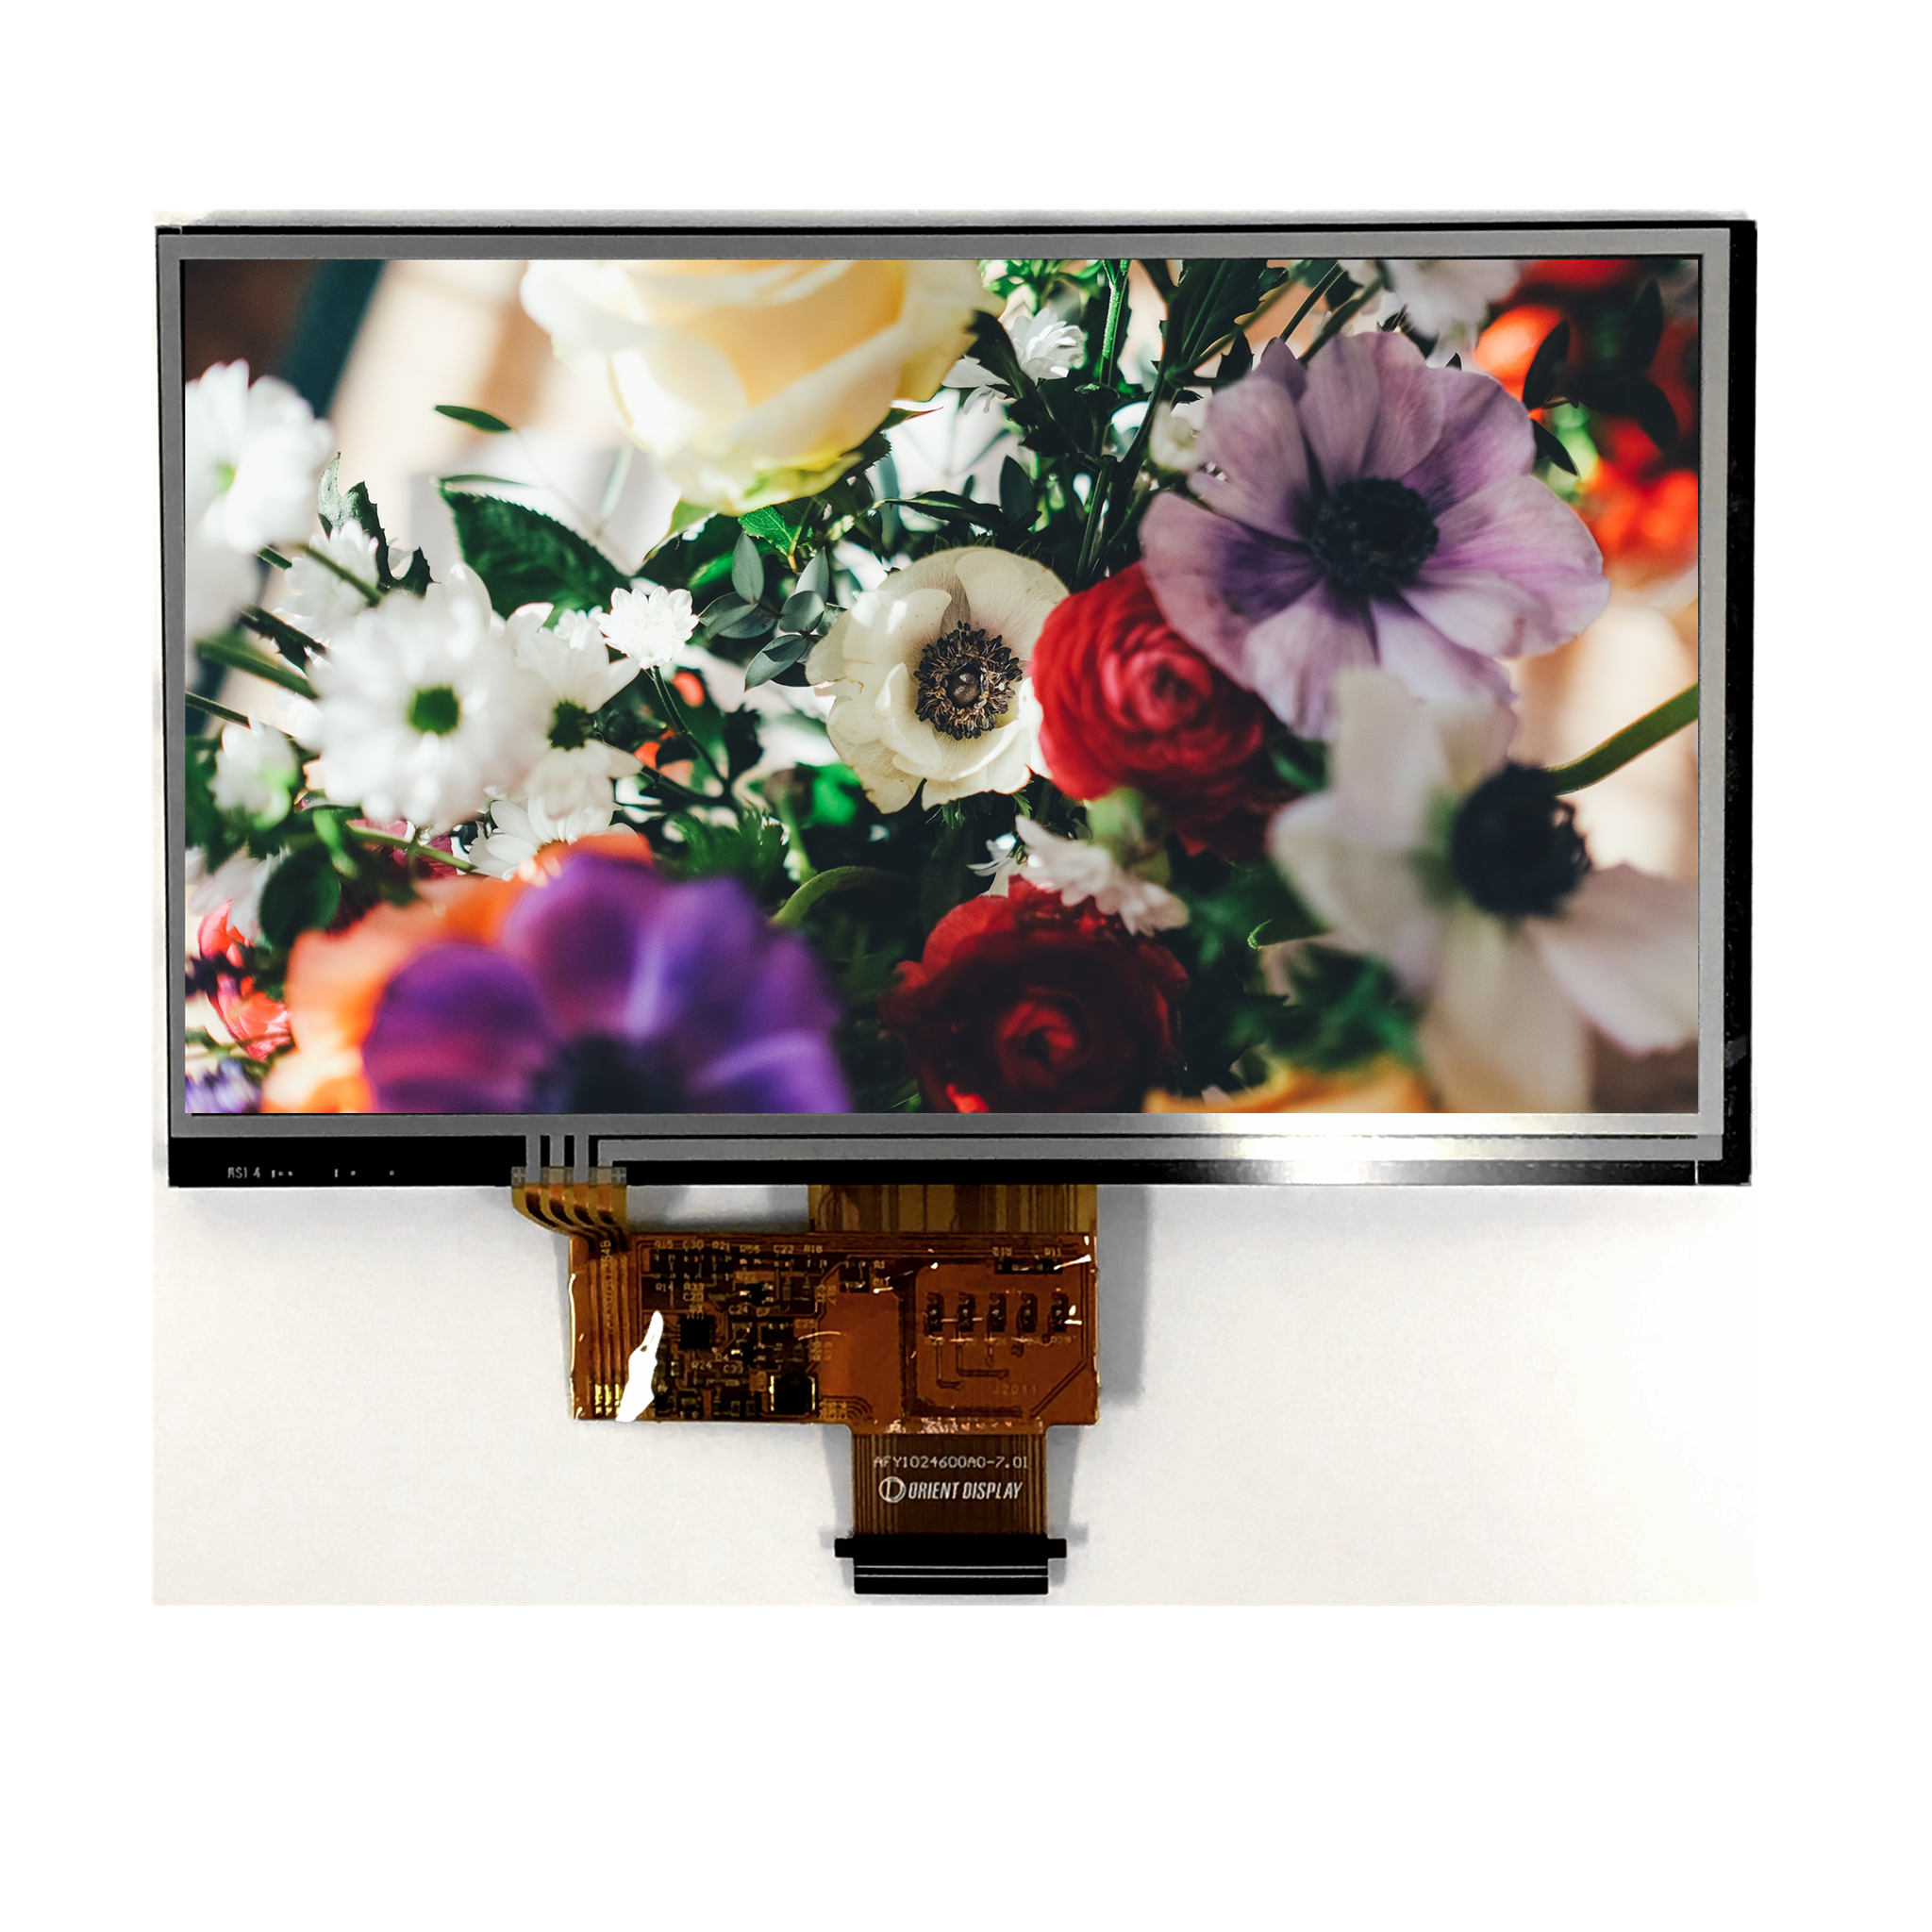 "7.0"" Sunlight Readable IPS, 1024x600, 800 Nits with Resistive Touch Panel"